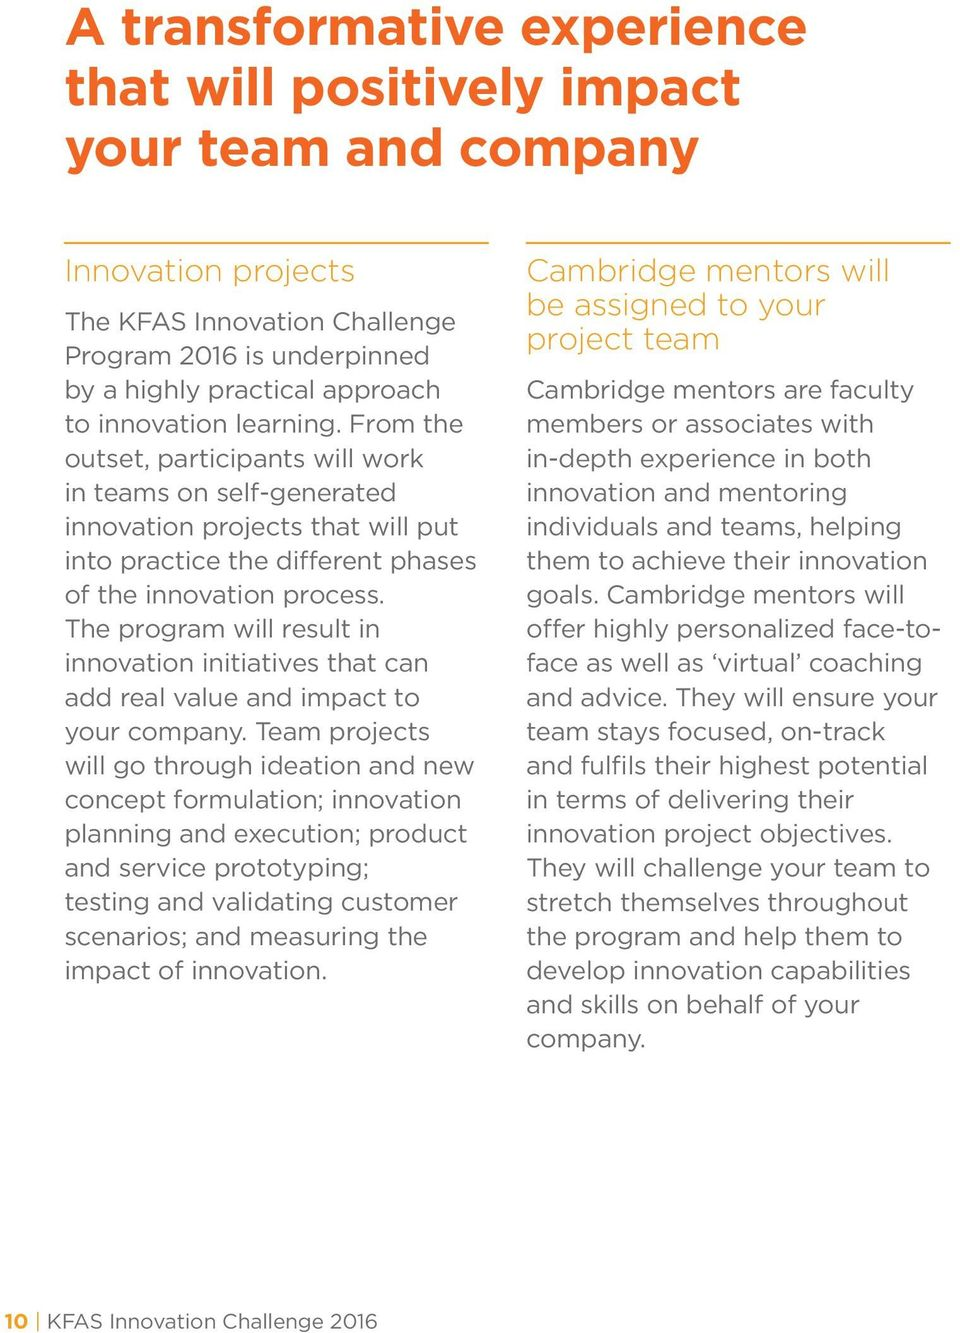 The program will result in innovation initiatives that can add real value and impact to your company.